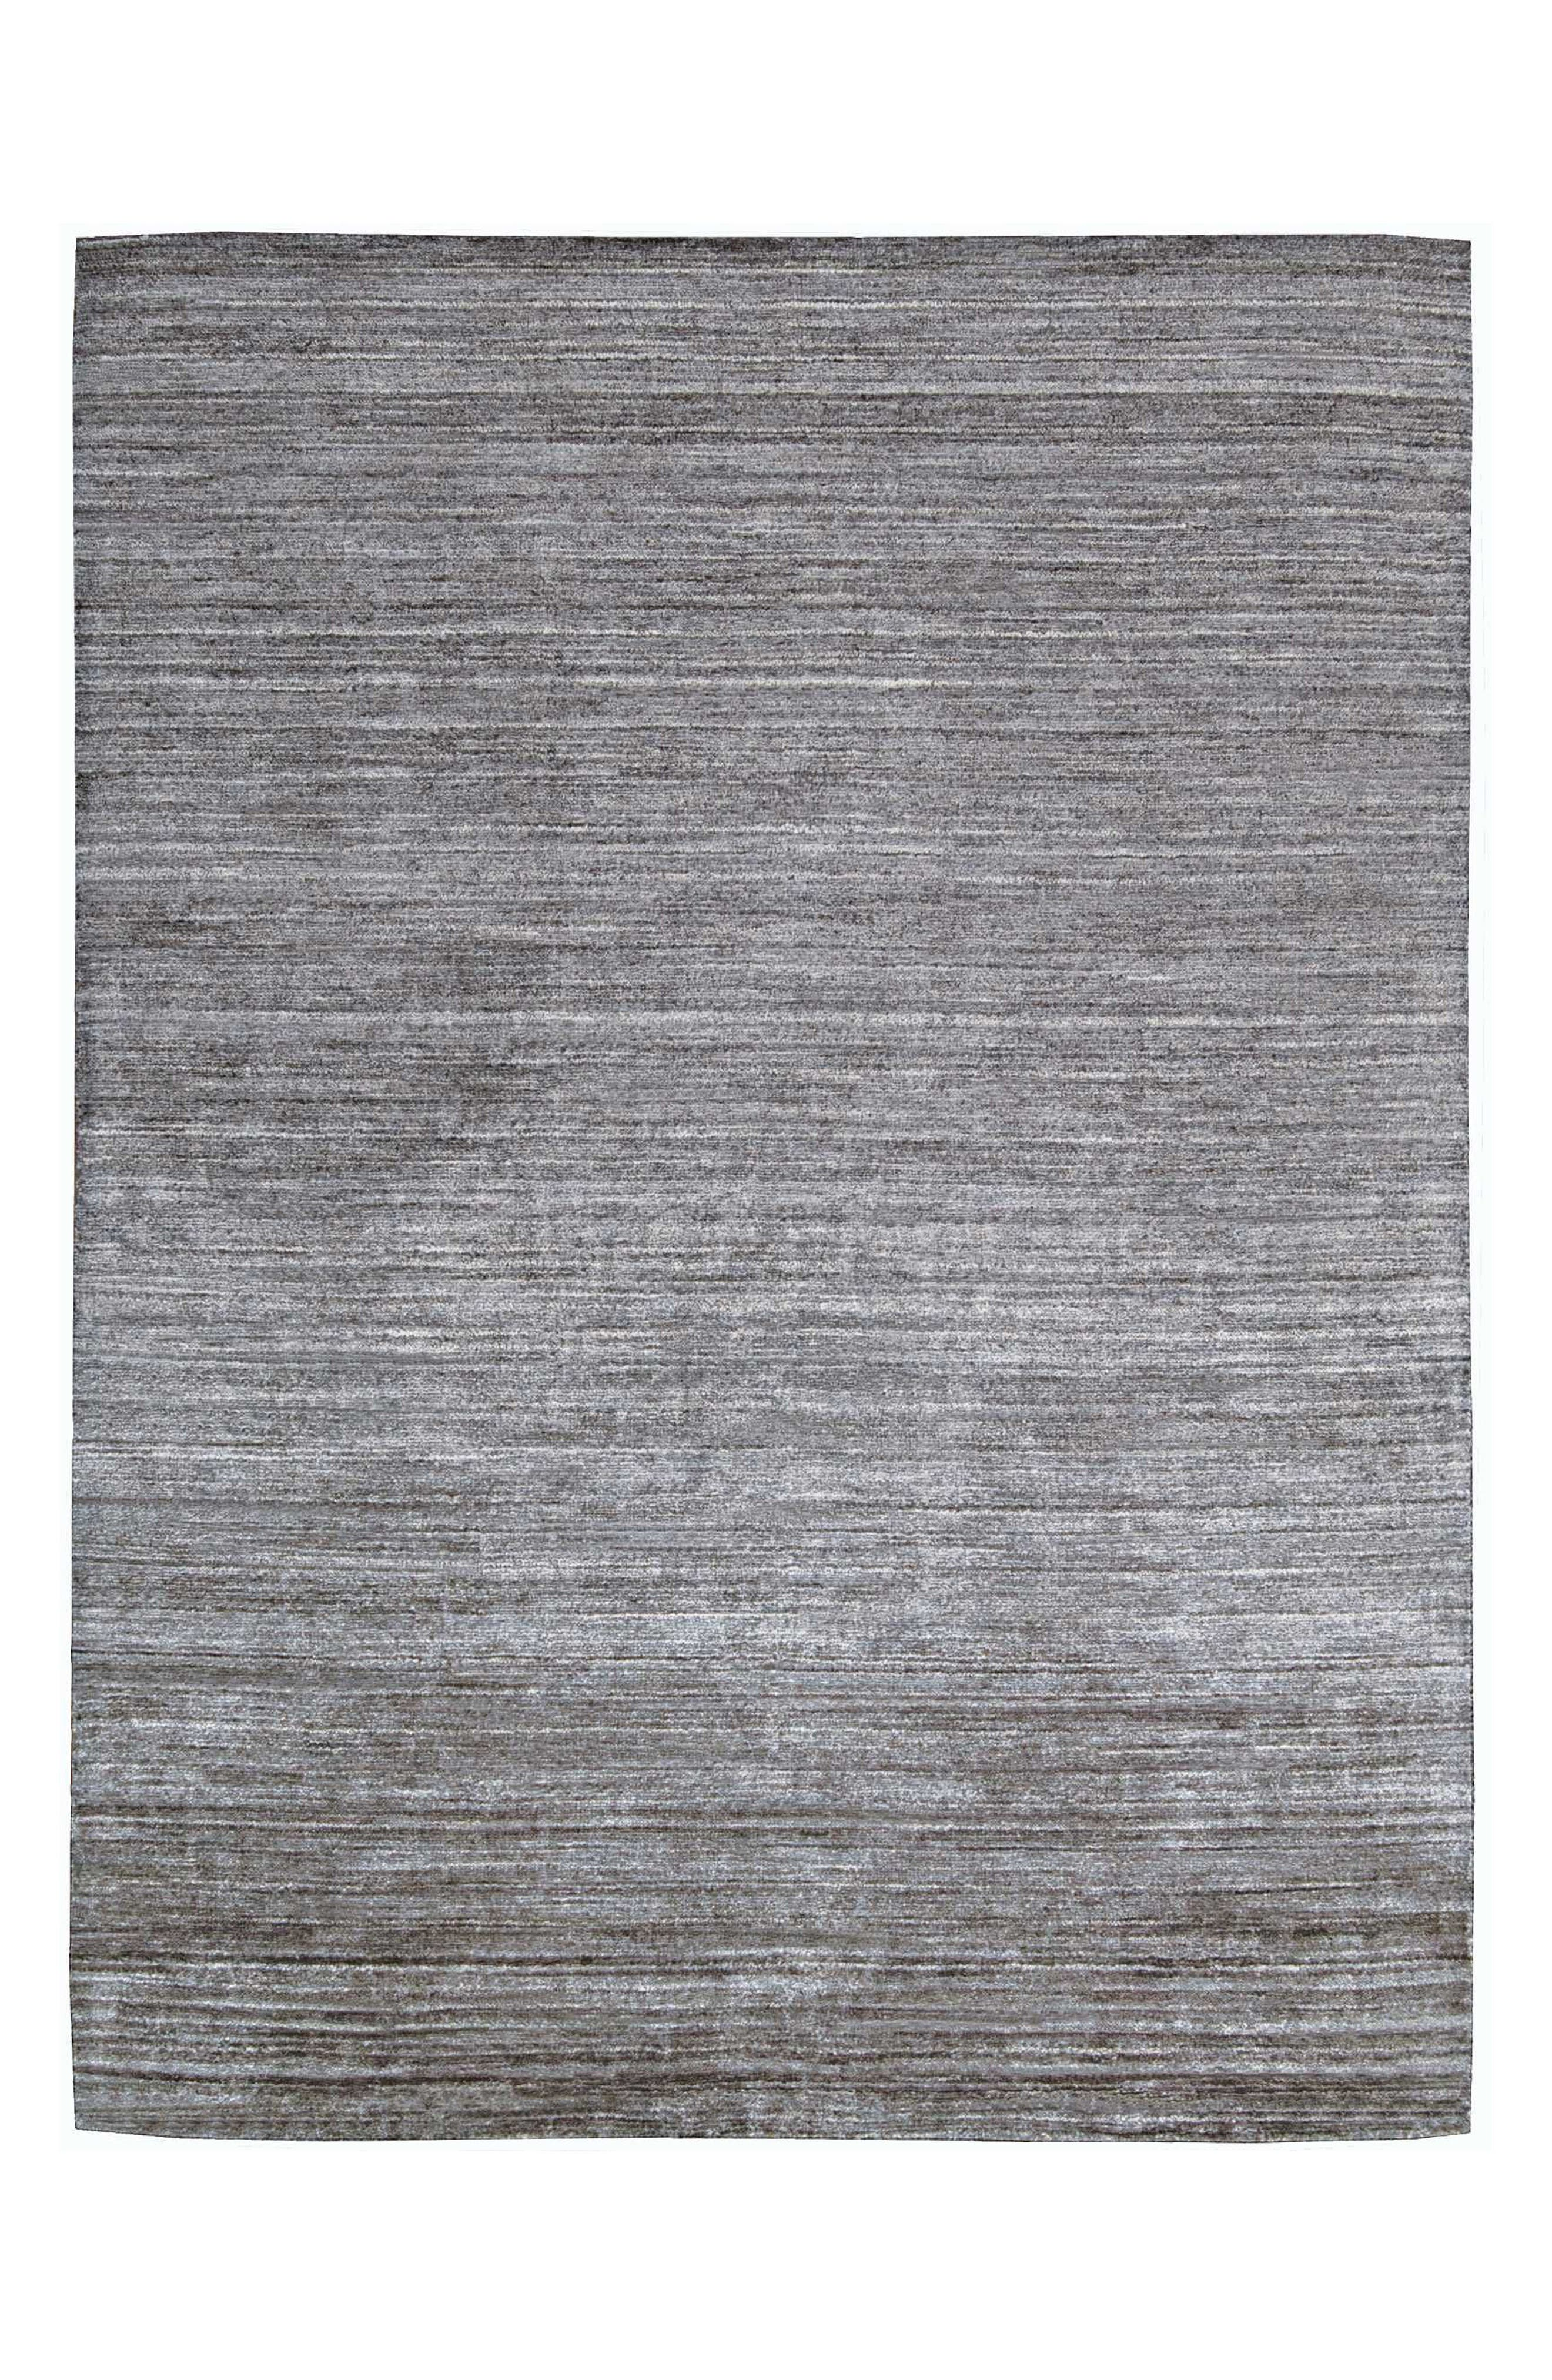 Home Shimmer Mineral Area Rug,                             Main thumbnail 1, color,                             020